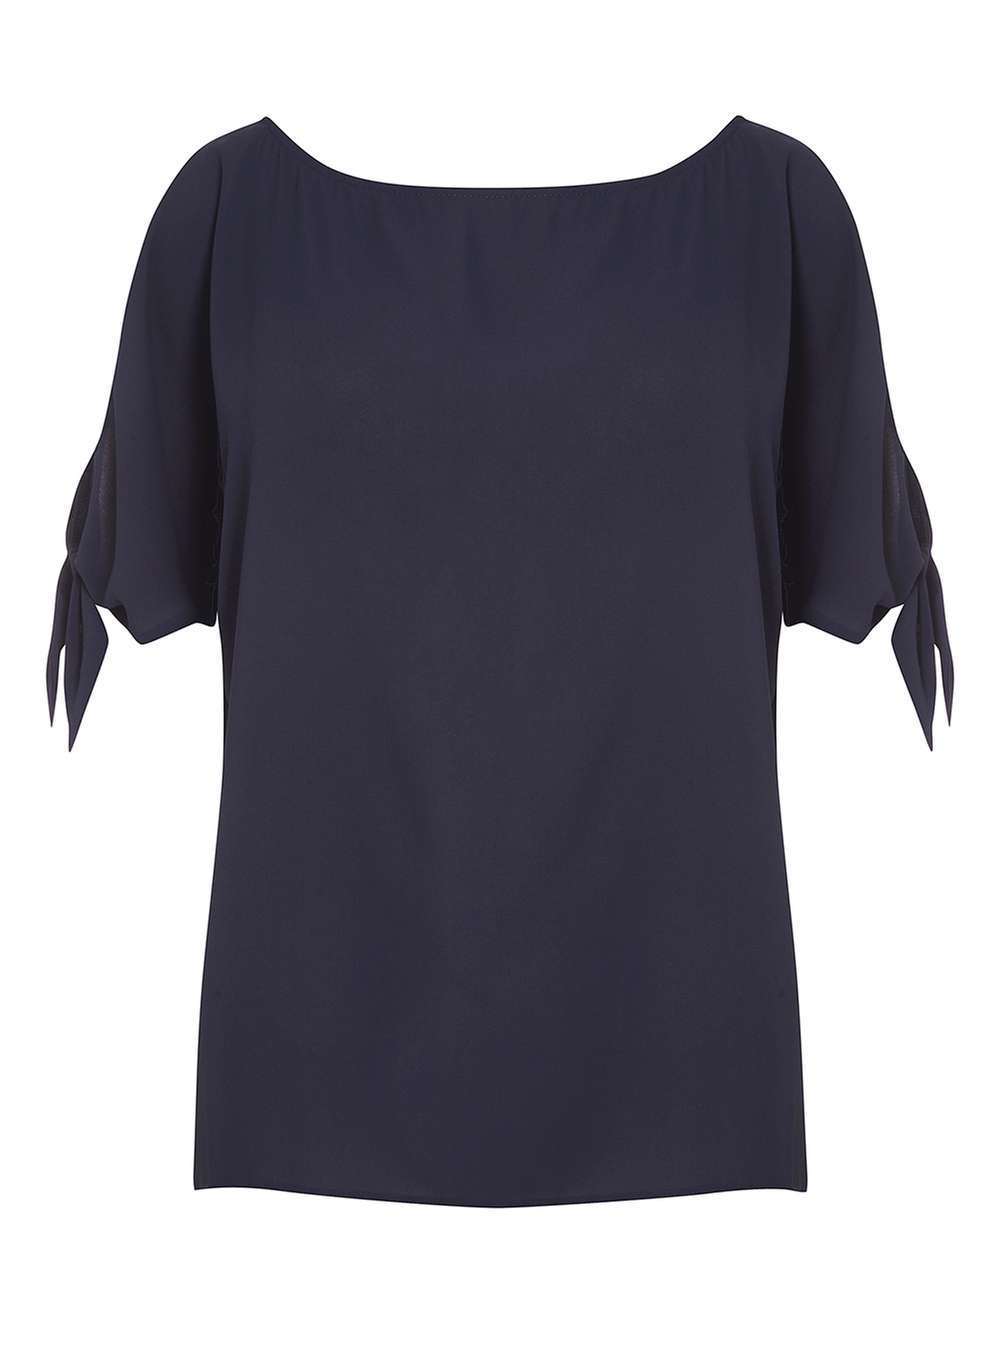 Womens Navy Tie Sleeve Top Blue - neckline: round neck; pattern: plain; predominant colour: navy; occasions: casual; length: standard; style: top; fibres: polyester/polyamide - 100%; fit: body skimming; sleeve length: short sleeve; sleeve style: standard; pattern type: fabric; texture group: other - light to midweight; wardrobe: basic; season: a/w 2016